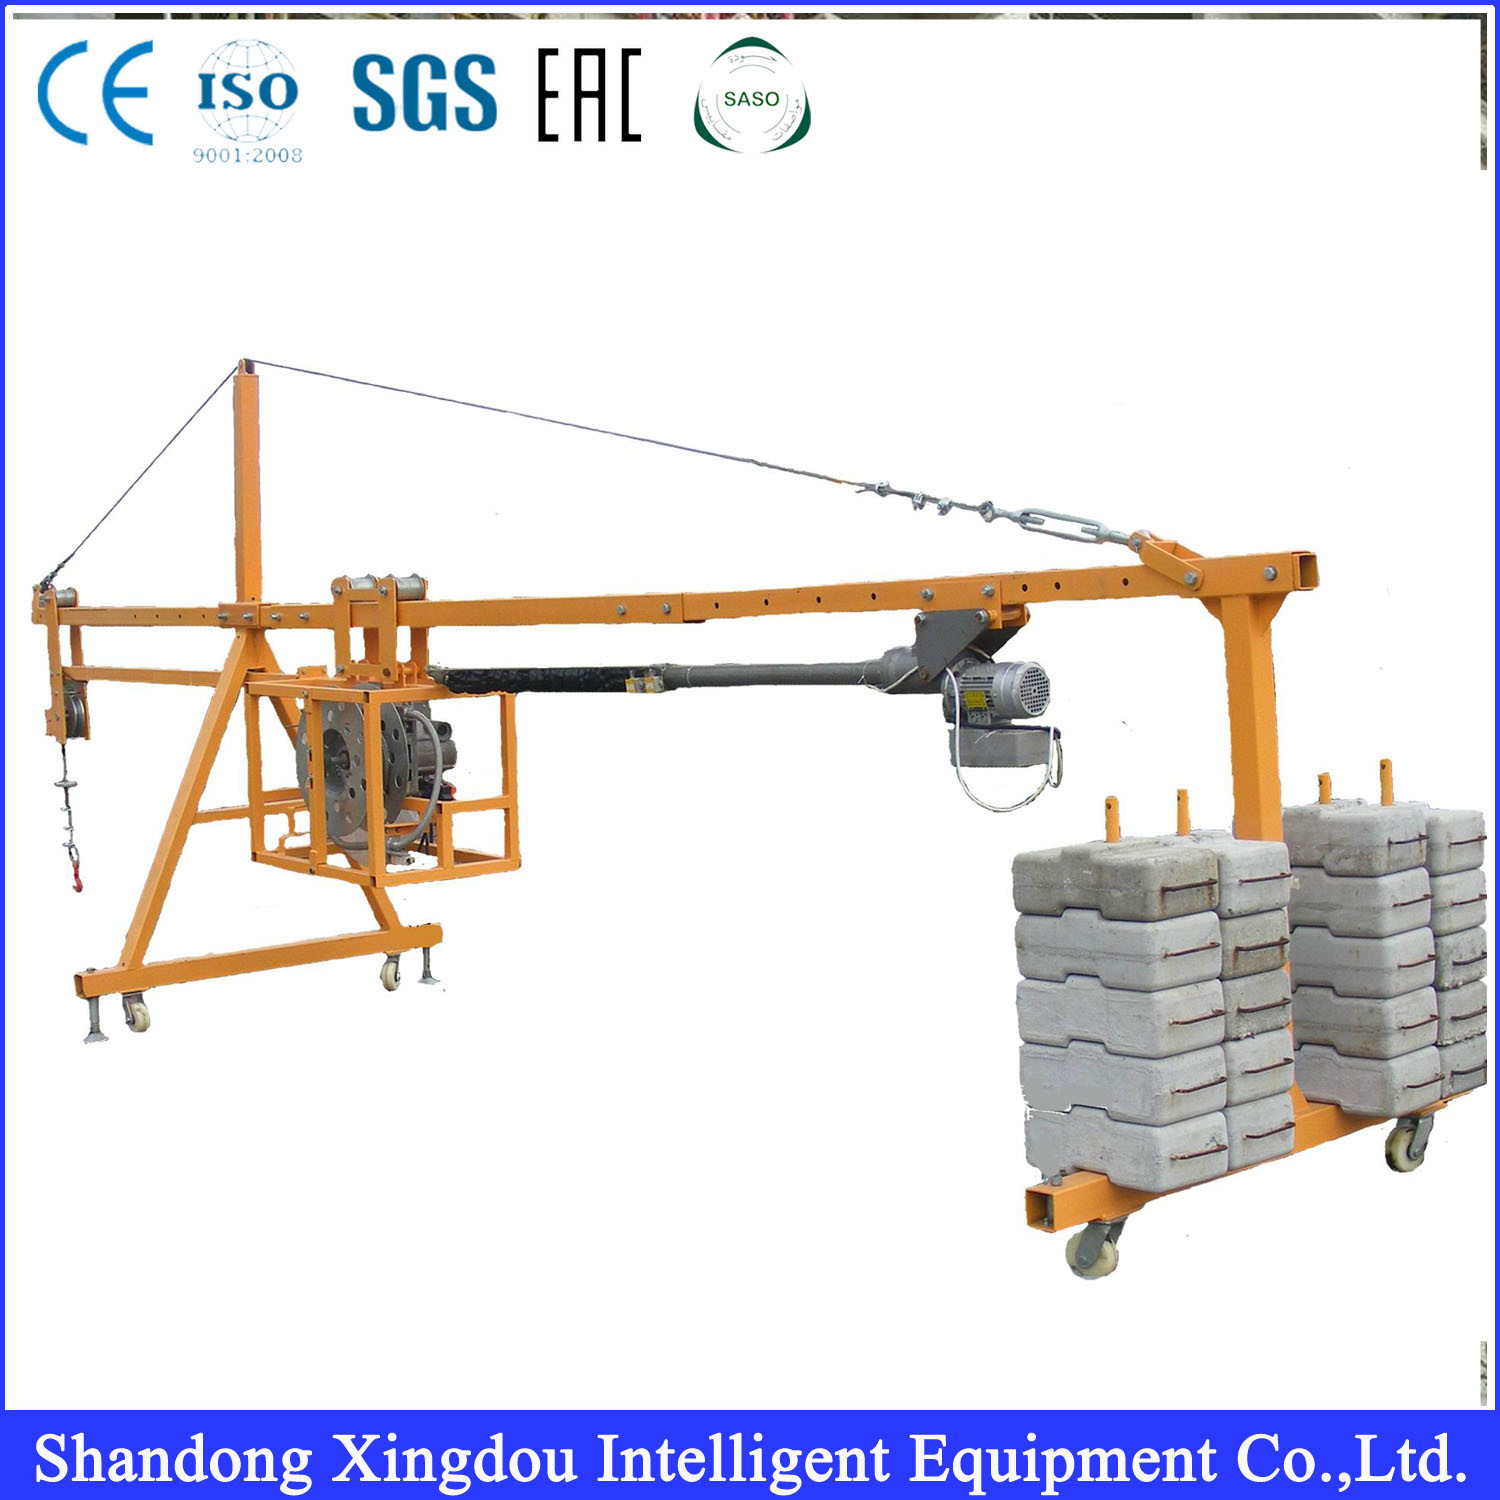 Suspended Platform with (Suspension Mechanism) Zlp